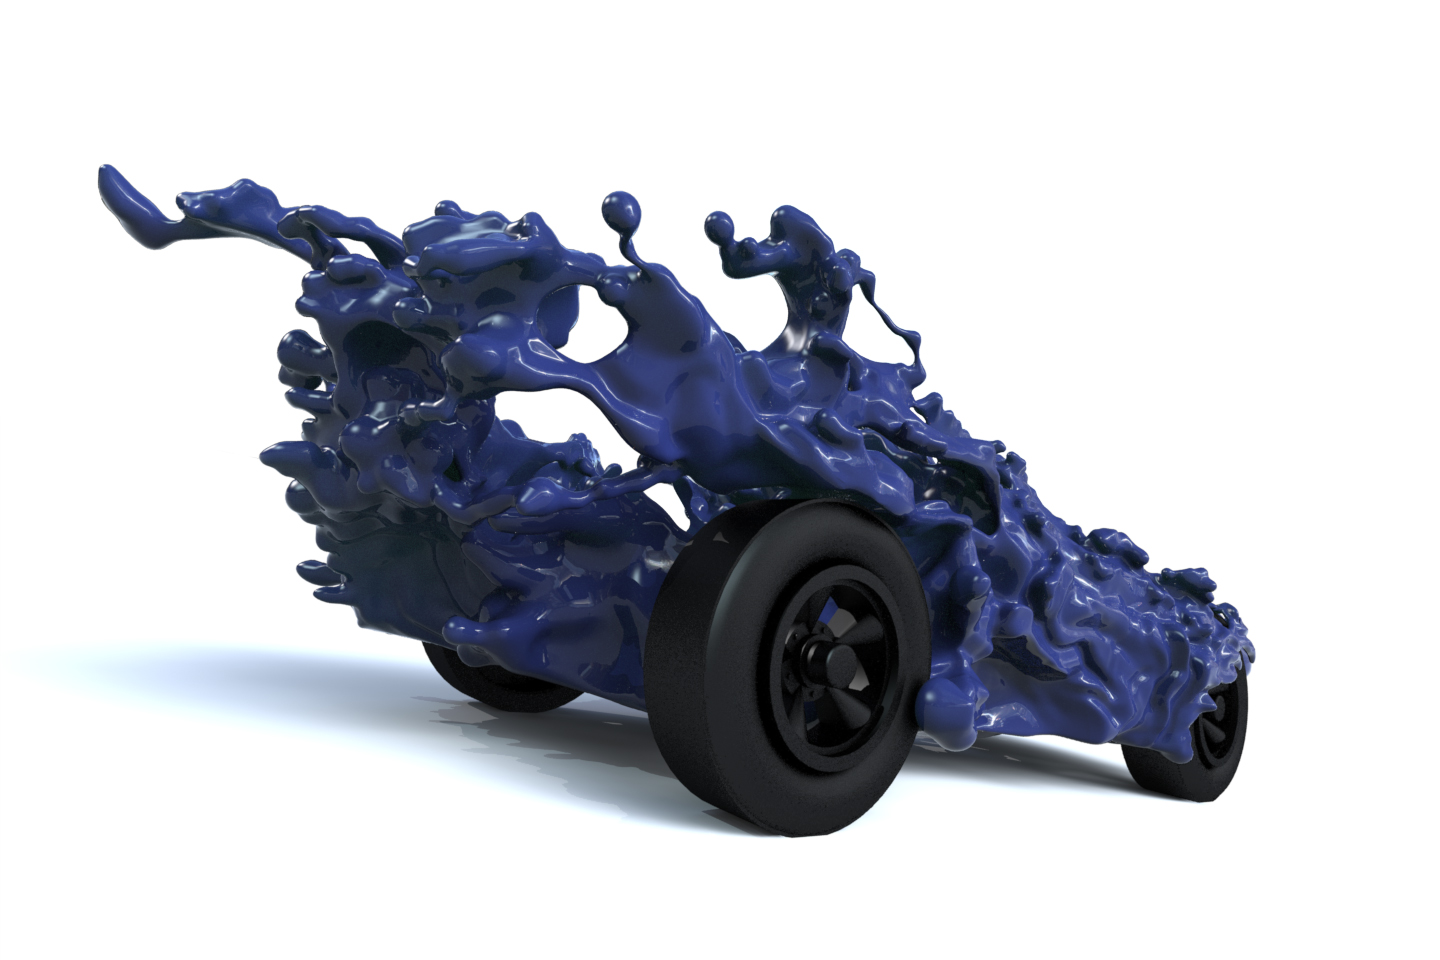 Update on Liquid Car model for 3d printing